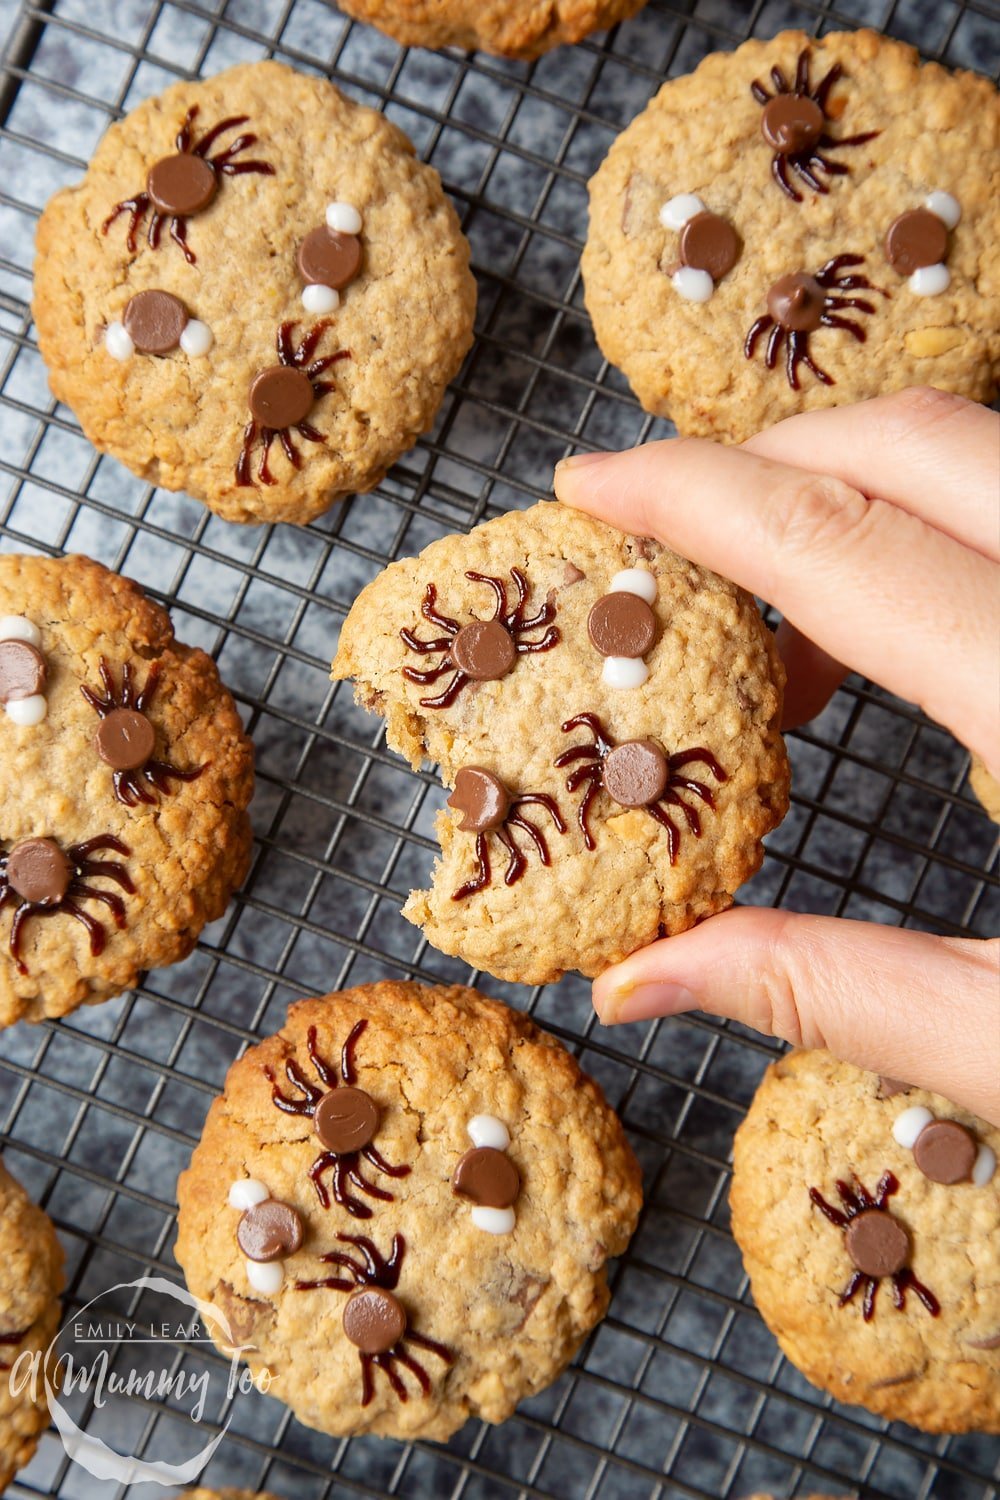 Full decorated Halloween peanut butter spider cookies on a wire rack. A hand is holding a cookie, which has a bite taken out of it.